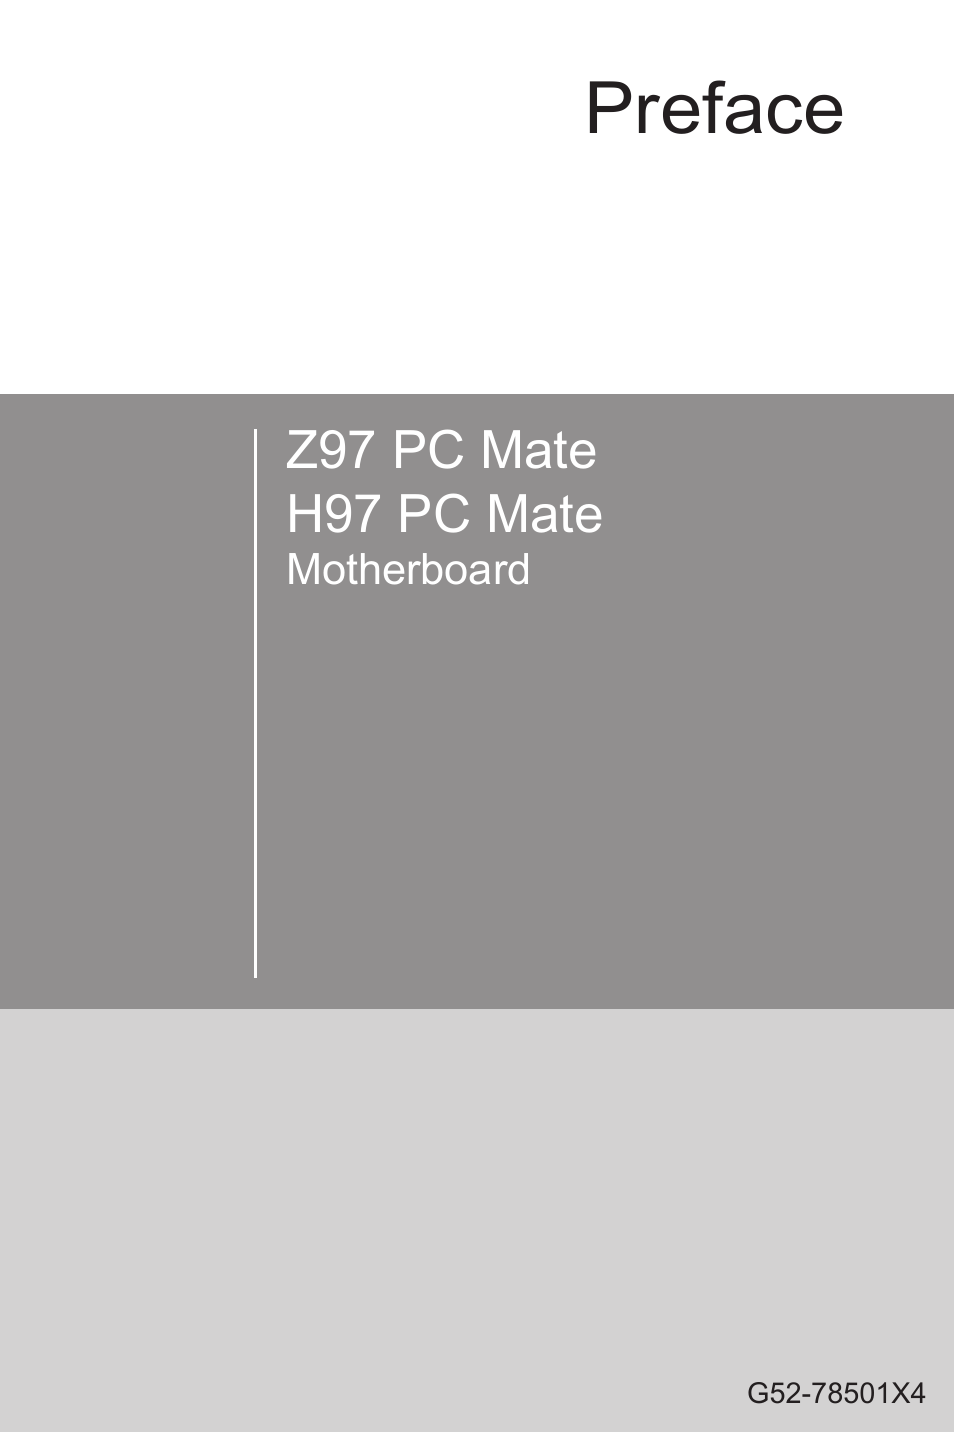 Msi Z97 Pc Mate User Manual 102 Pages Motherboard Diagram